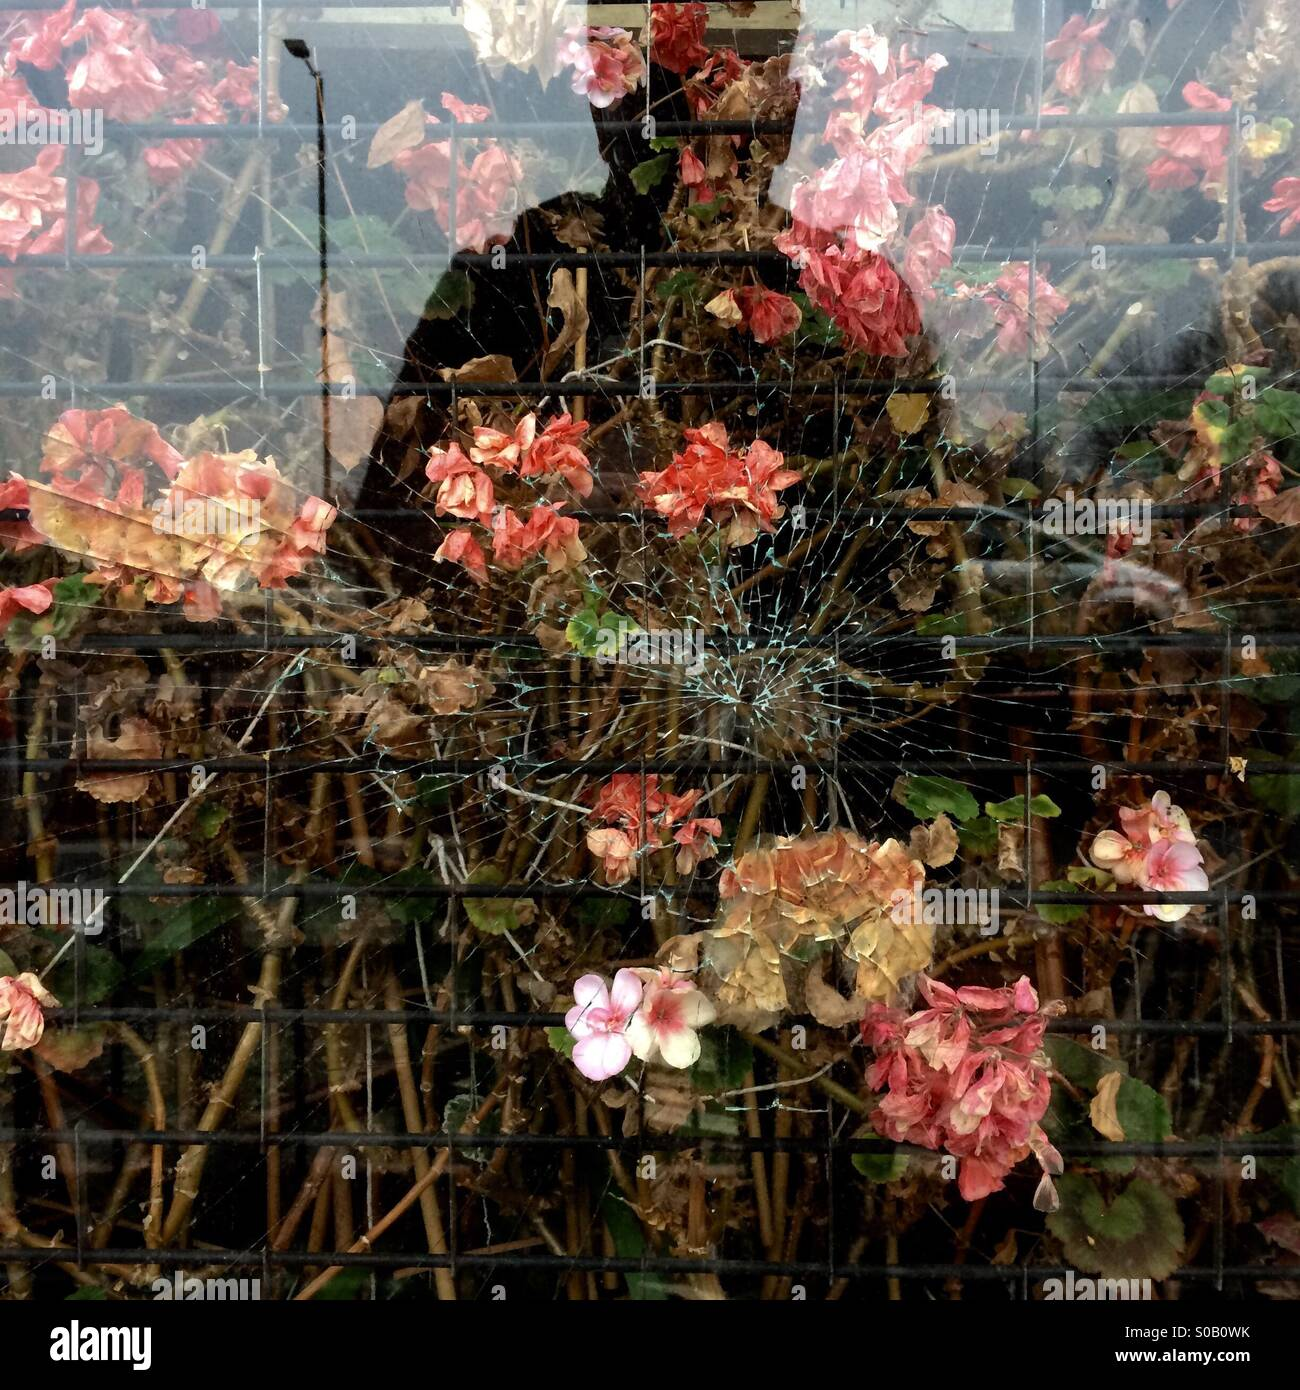 A figure is reflected in the broken window of a closed-down florist shop in Birmingham, England, UK. - Stock Image